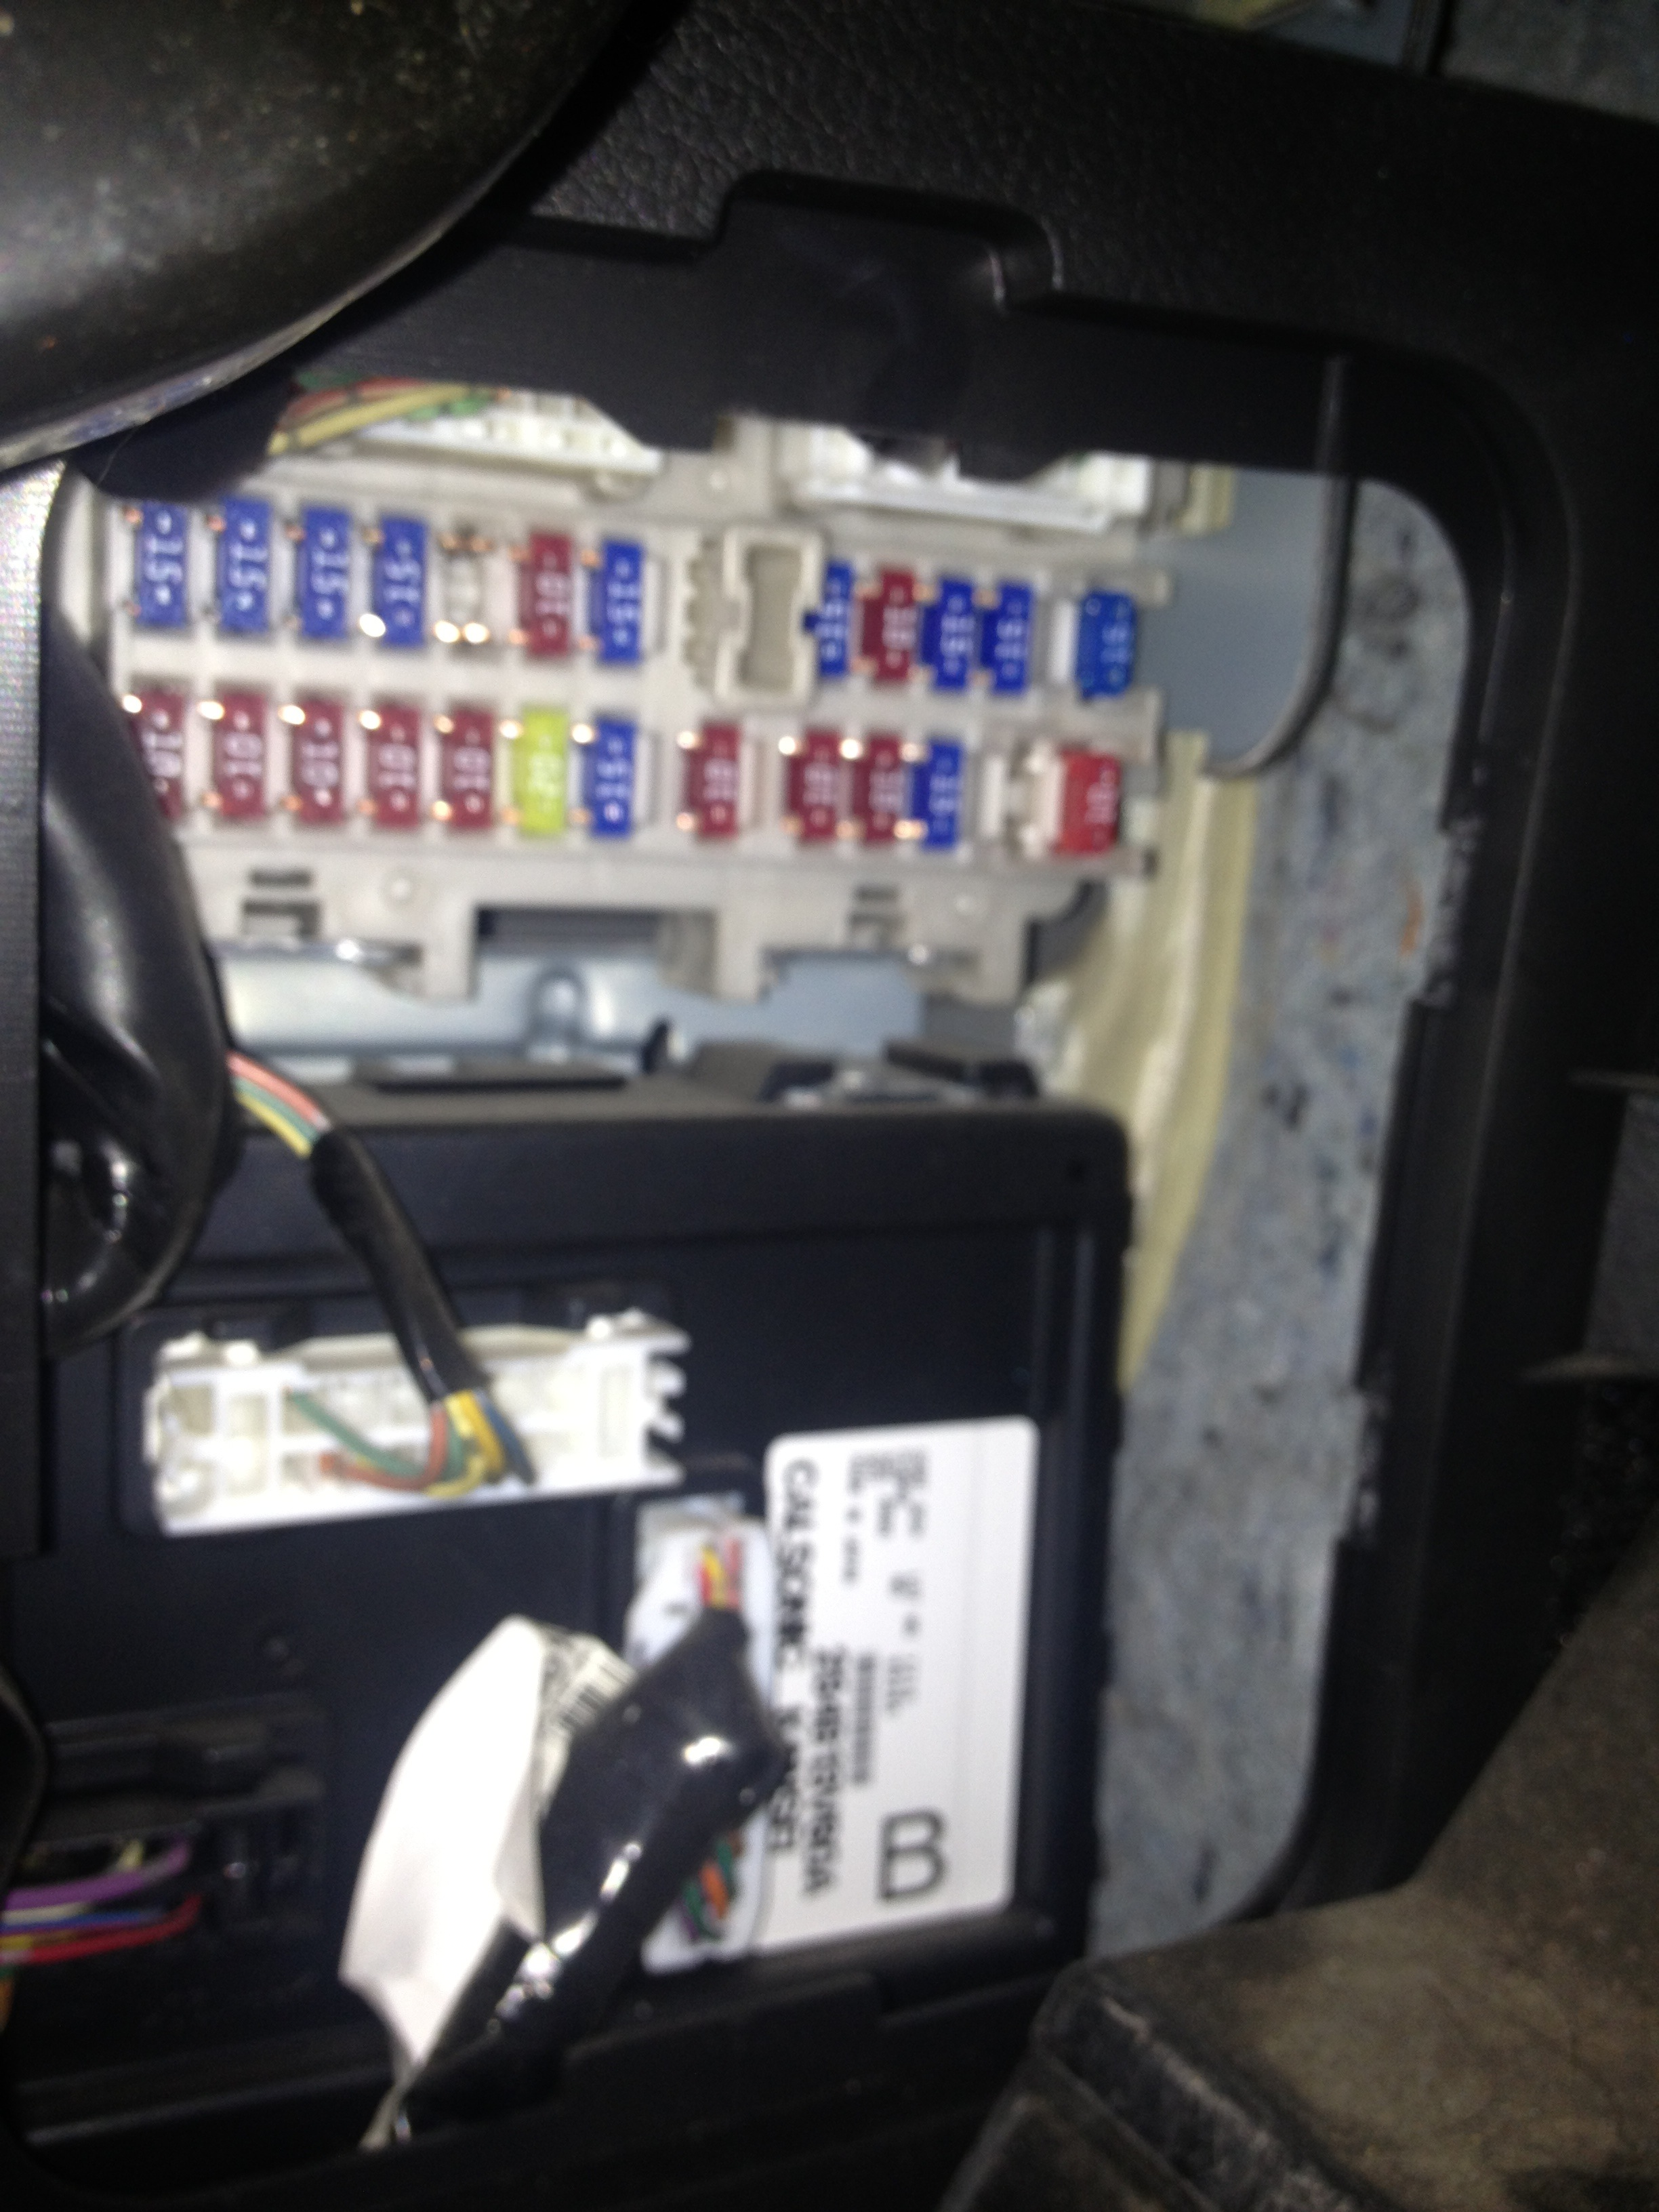 2008 Infiniti Fx35 Fuse Box Diagram 35 Wiring Images Location 2013 06 17 232803 Photo 10 Fx Shrutiradio